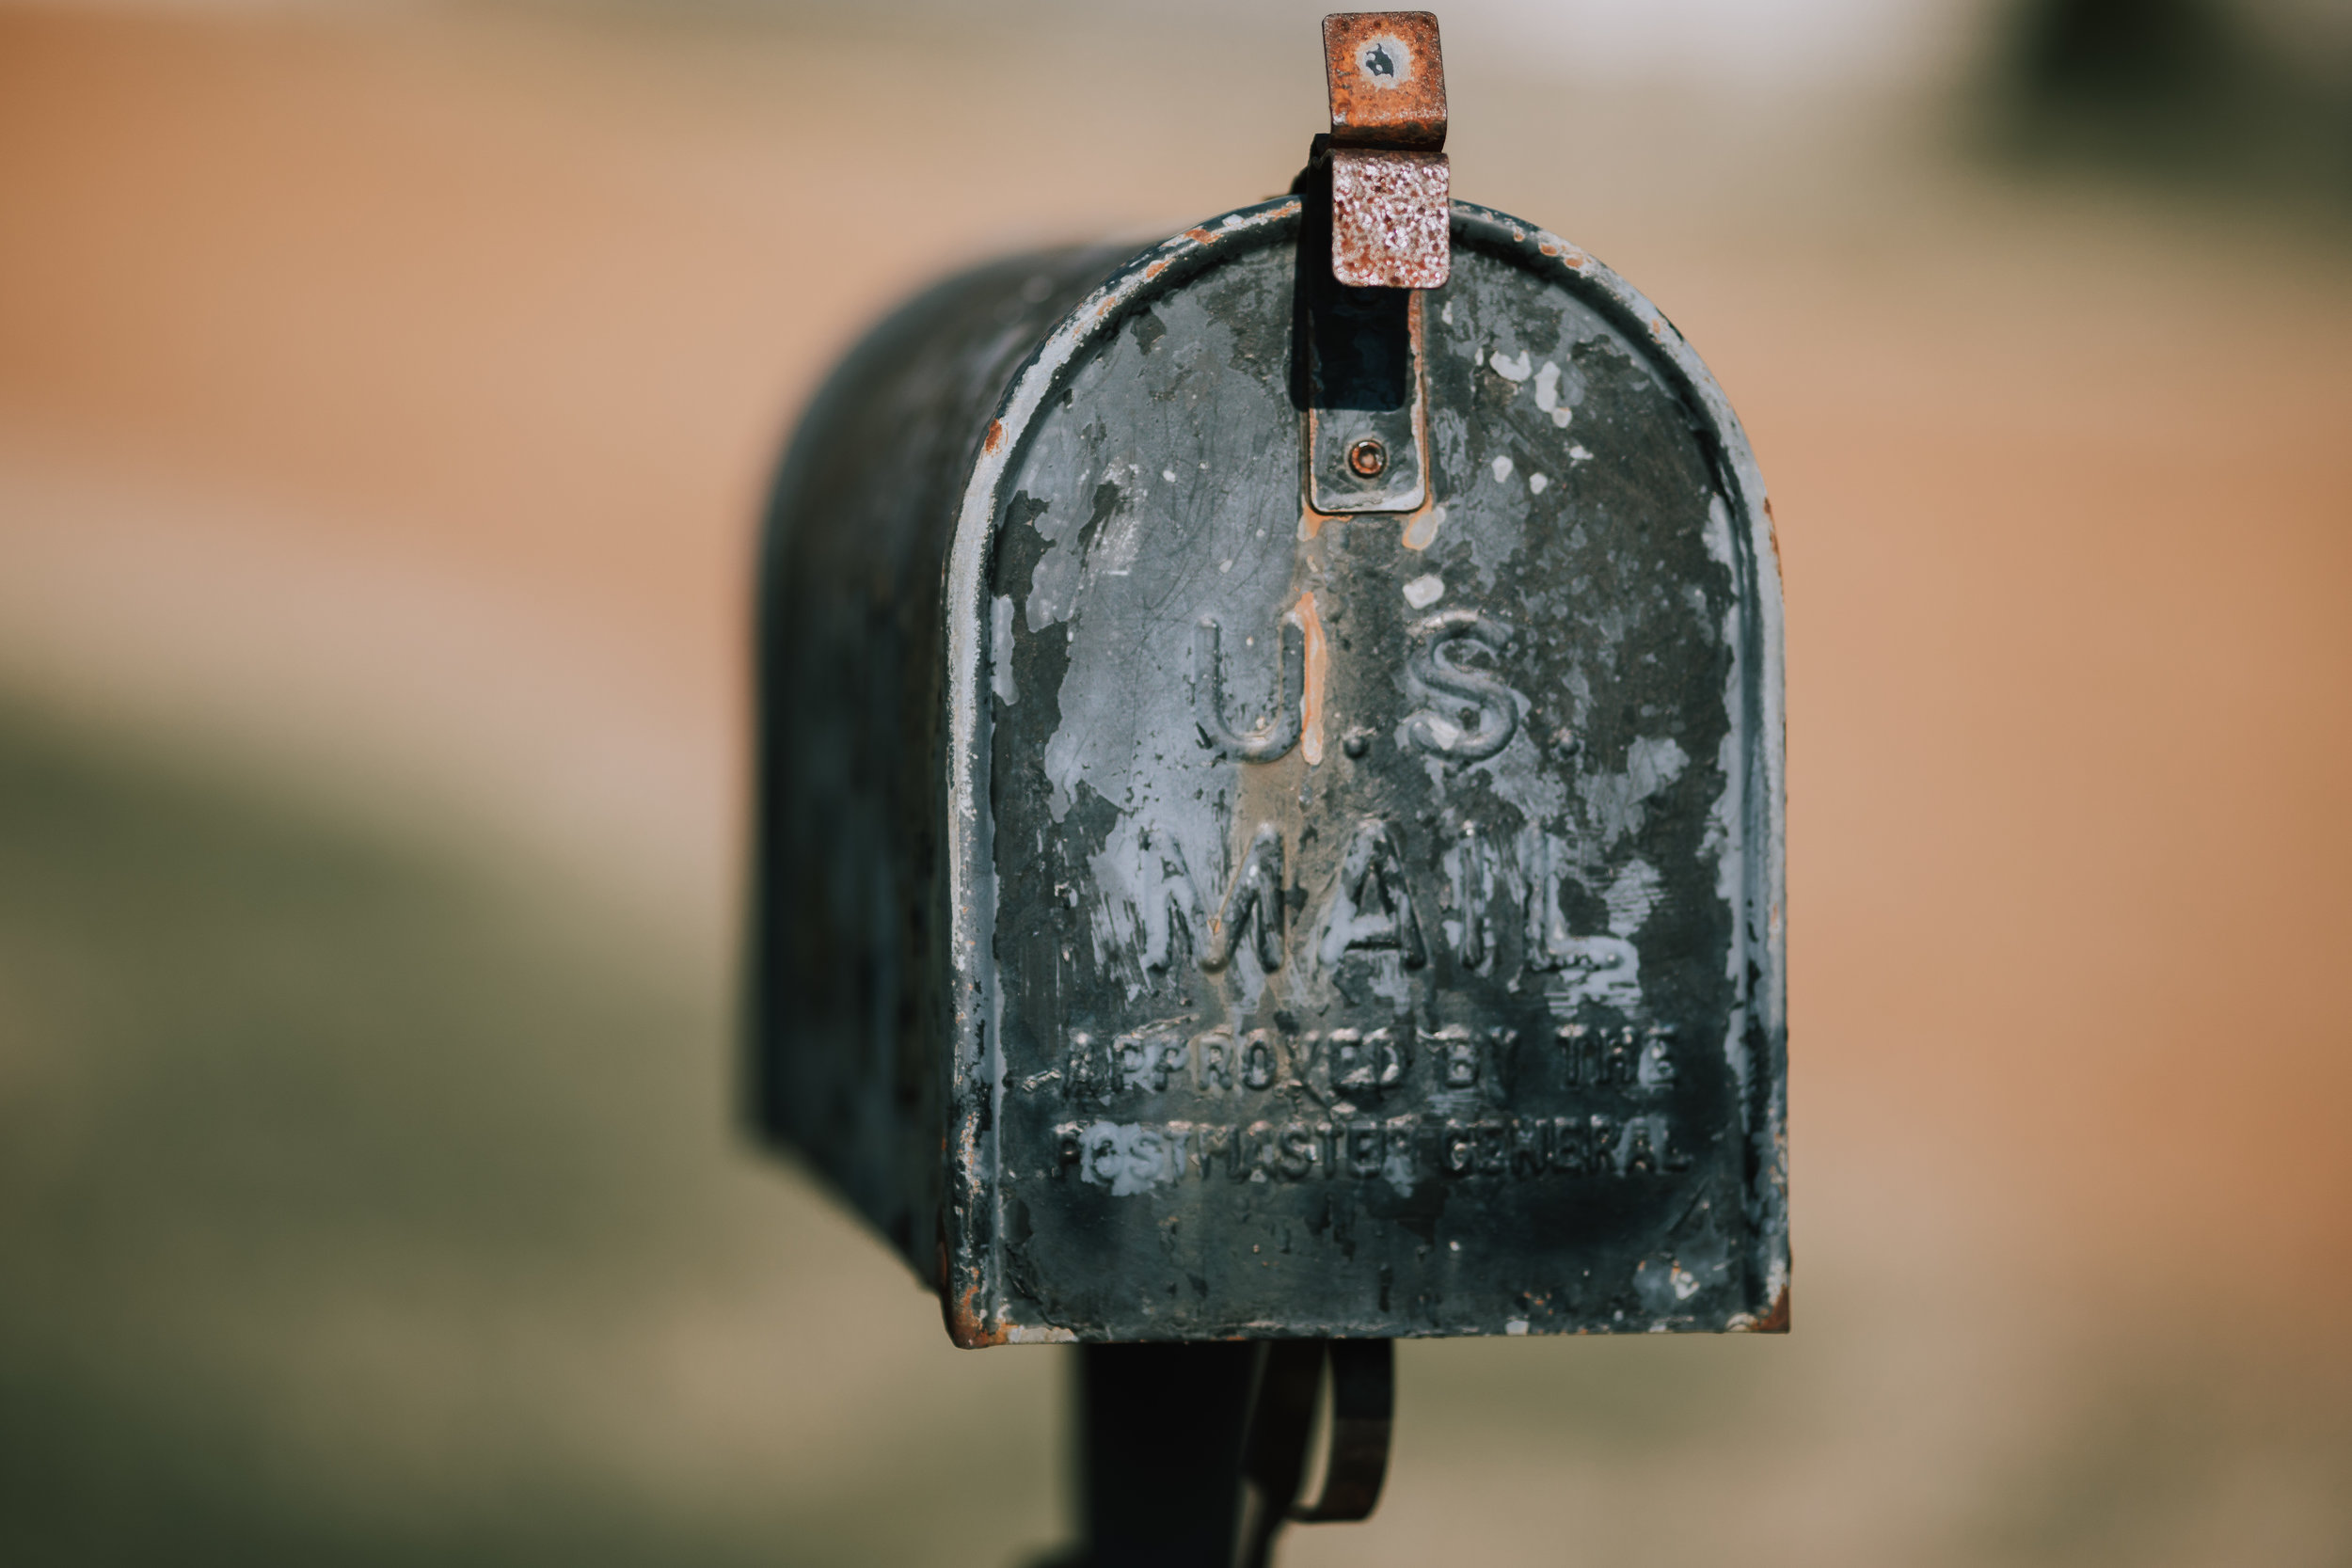 Inboxes don't get rusty—consumers check their emails multiple times throughout the day.